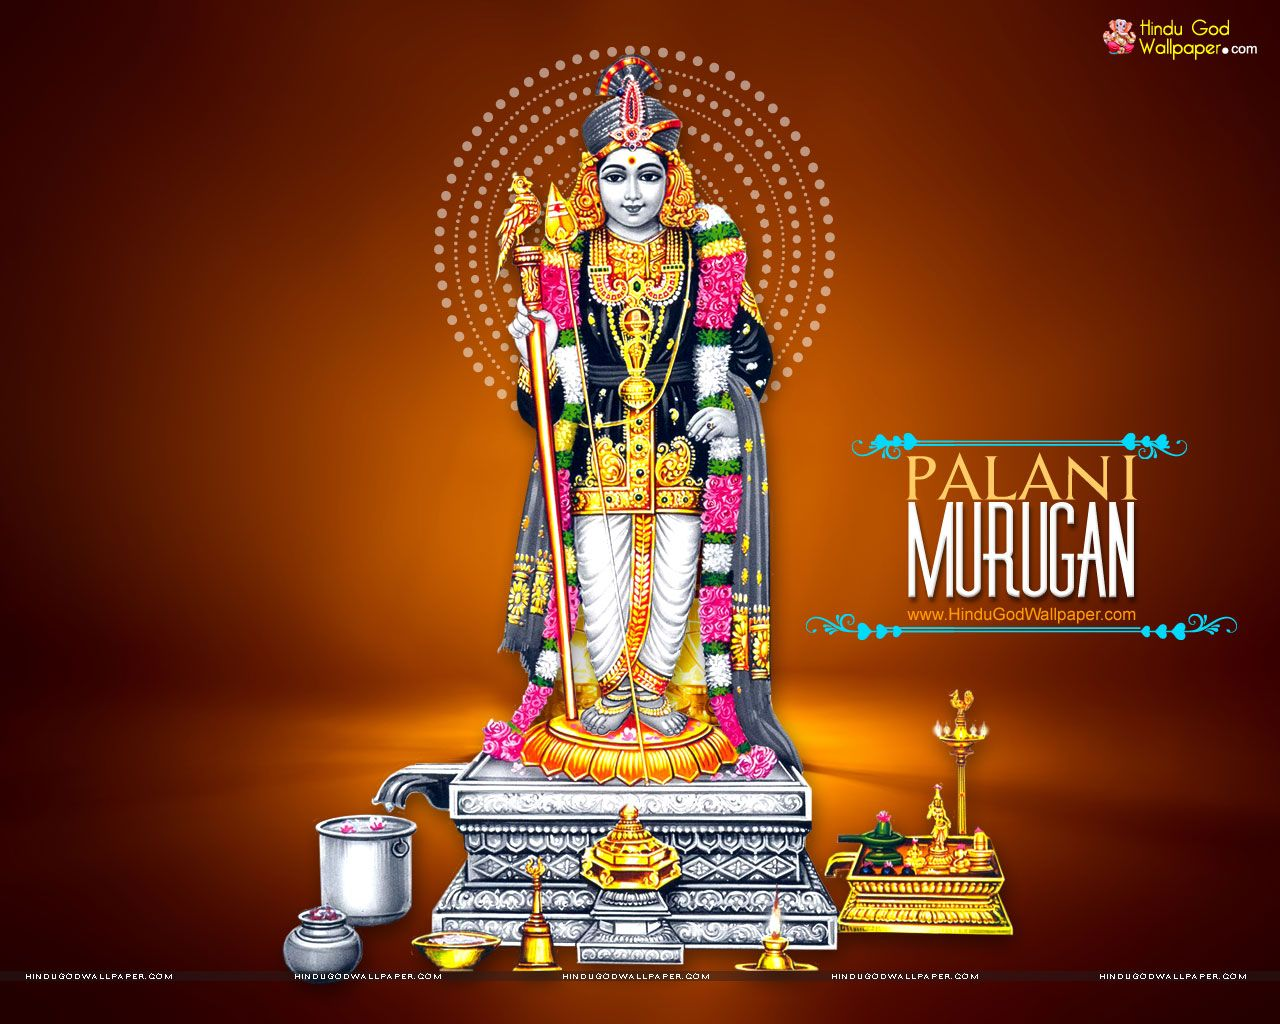 palani murugan wallpapers photos free download